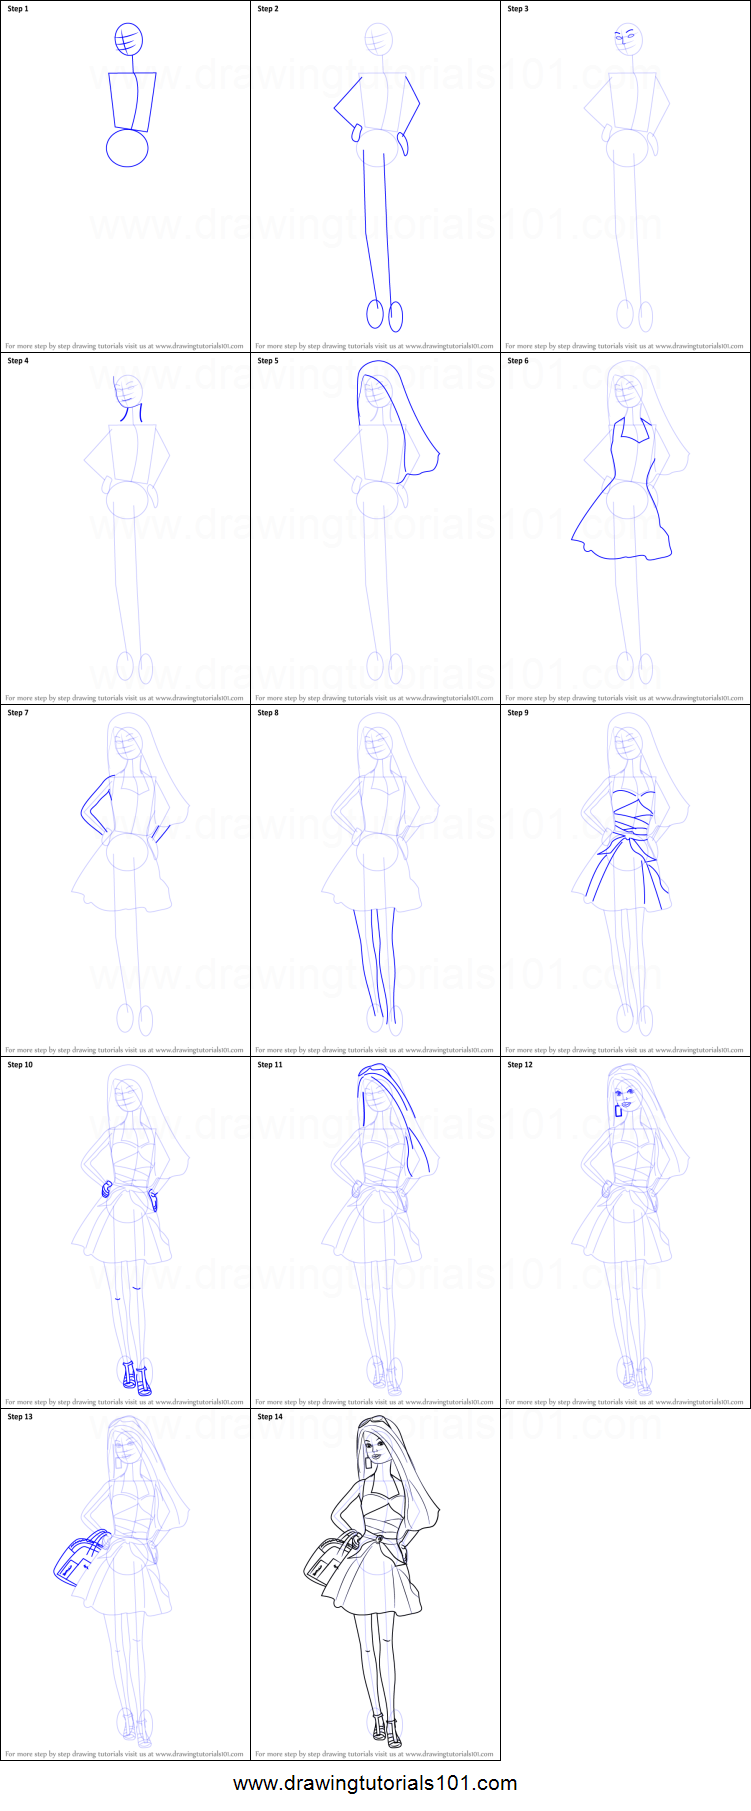 How To Draw A Barbie Doll Printable Step By Step Drawing Sheet  DrawingTutorials101.com